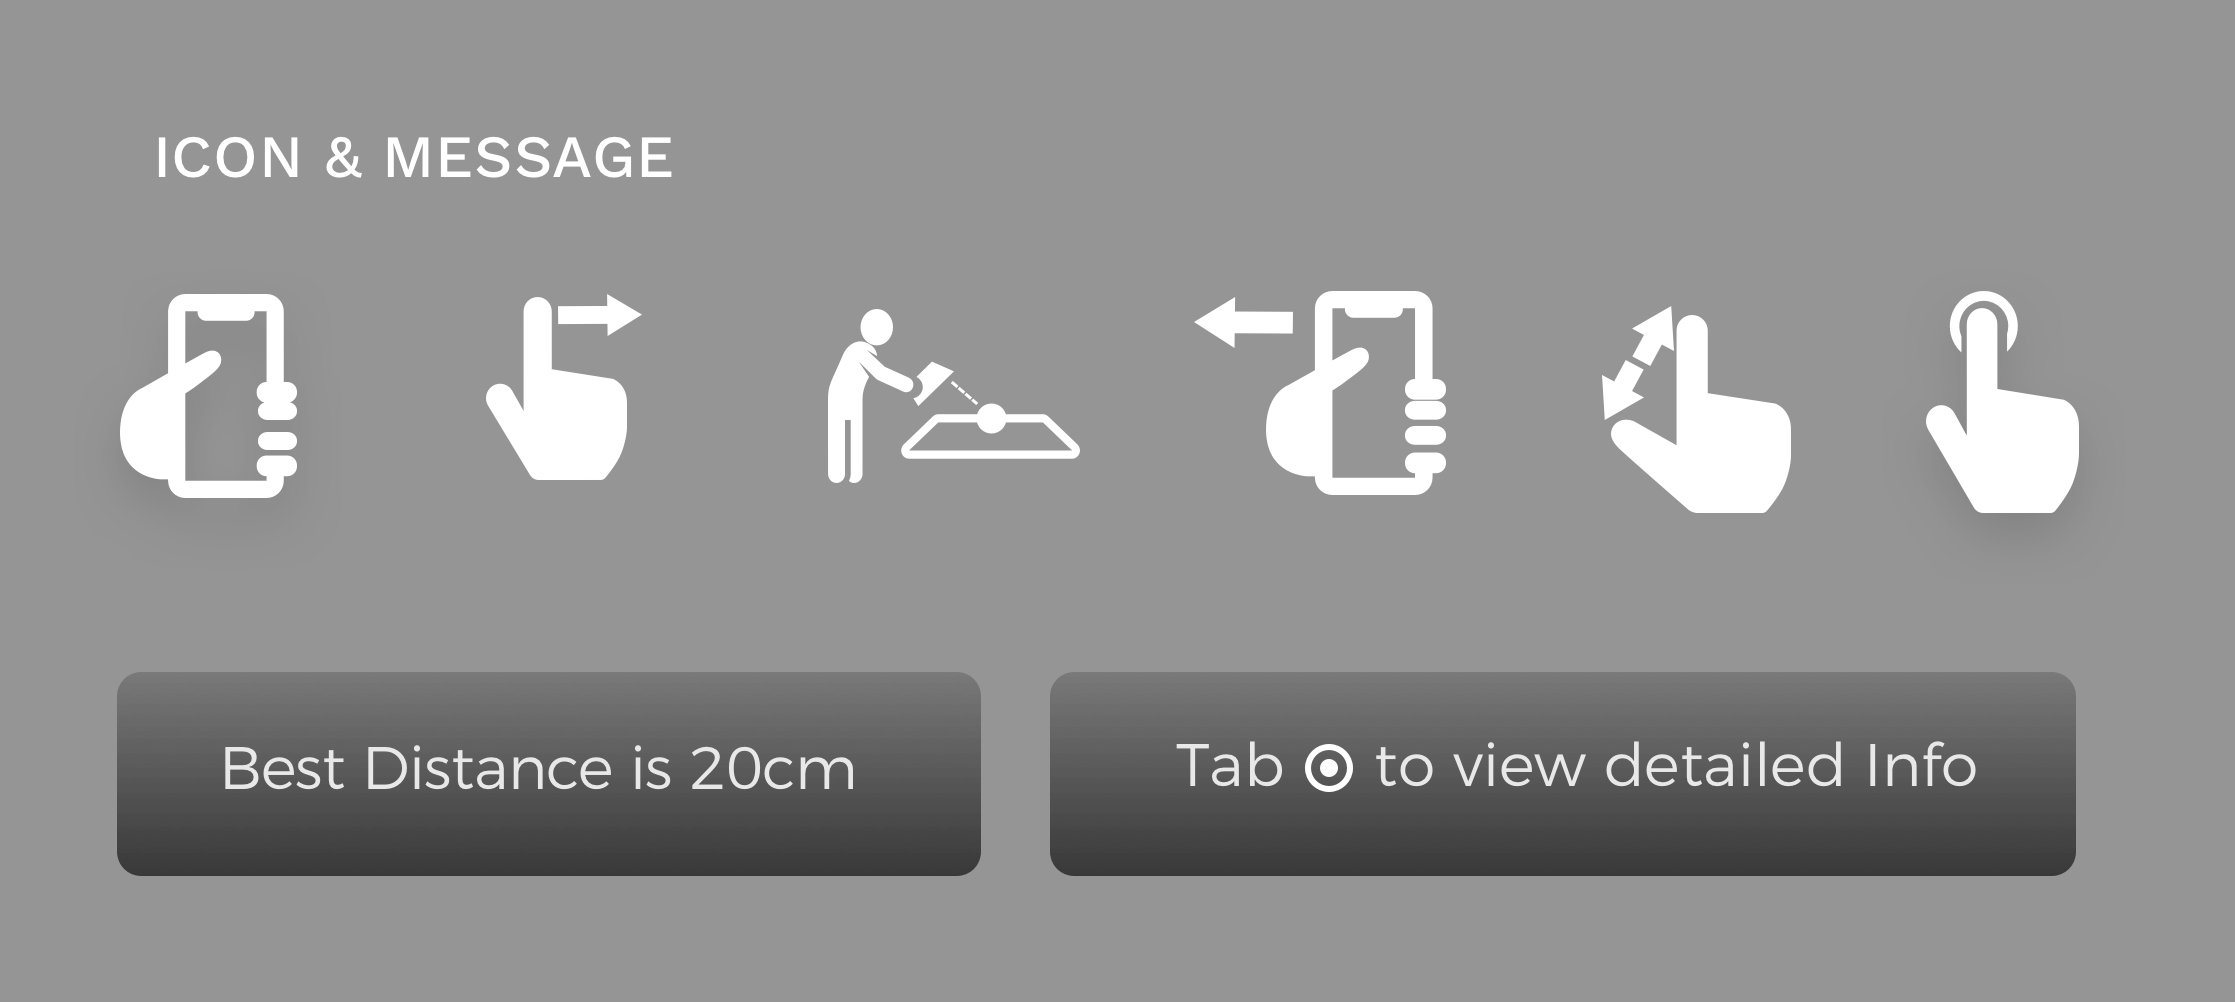 Scanning Icons Copy.png